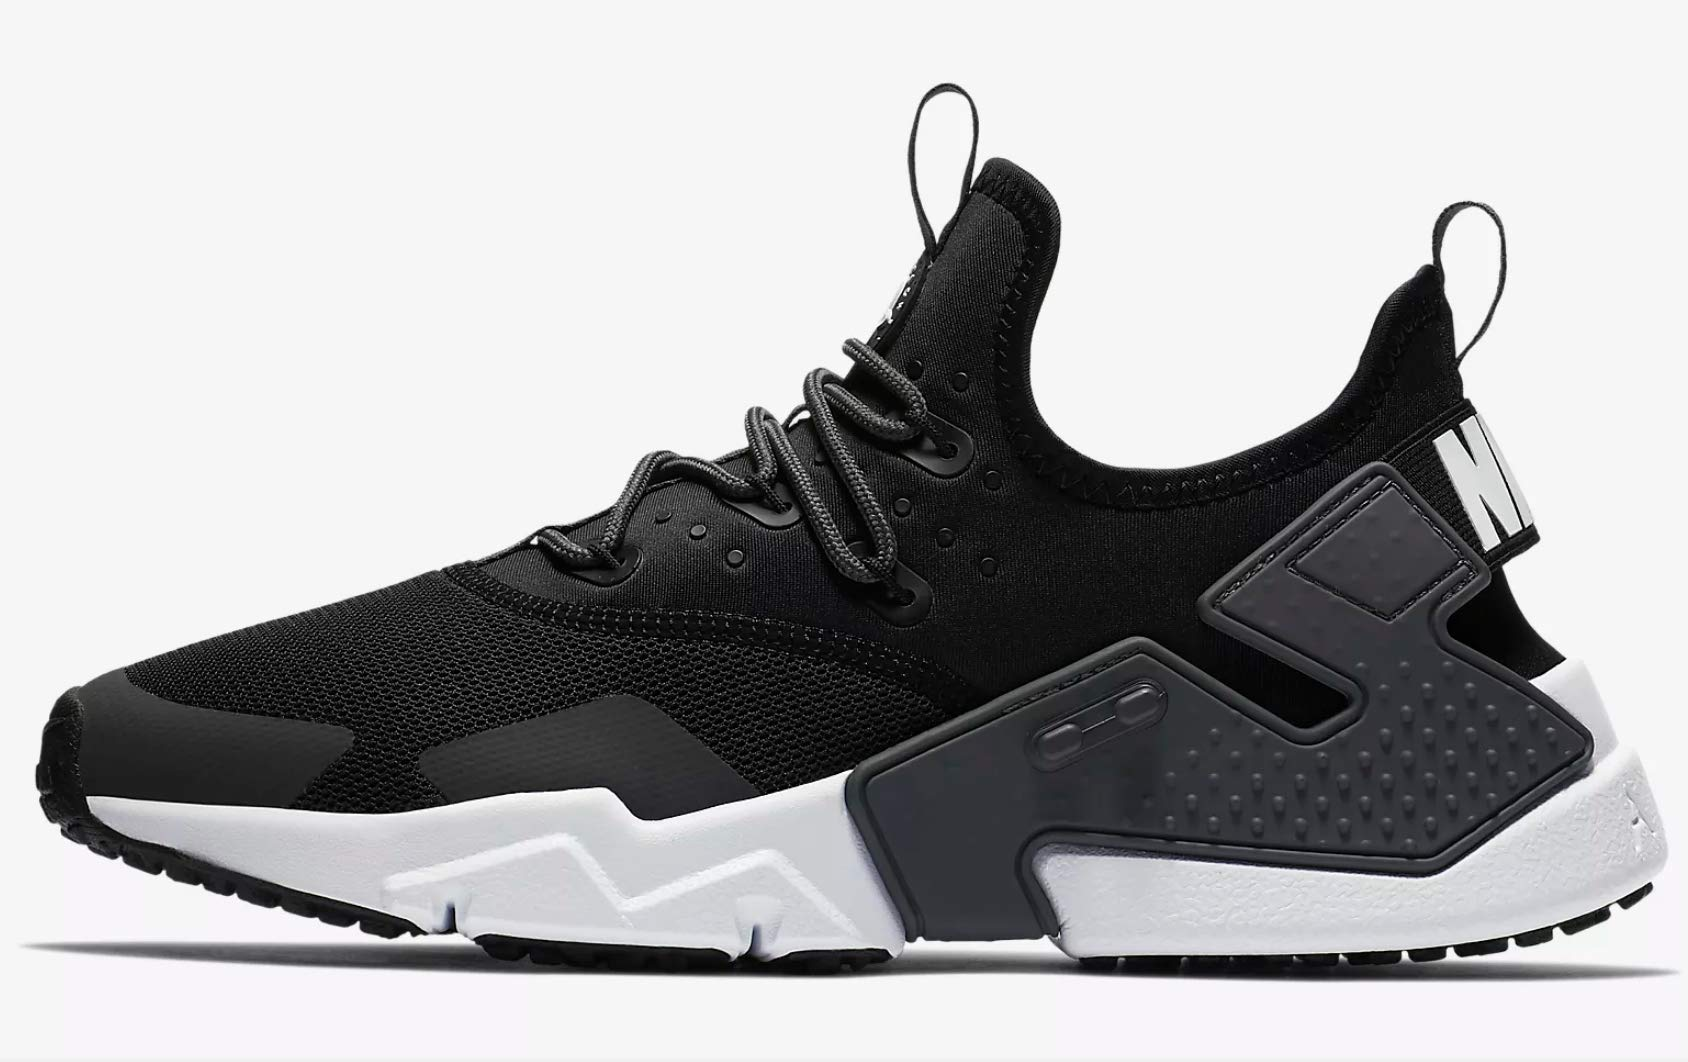 new style 97bee aff92 Galleon - NIKE Men s Air Huarache Drift Running Shoe, Black Black-Anthracite-White,  7.5